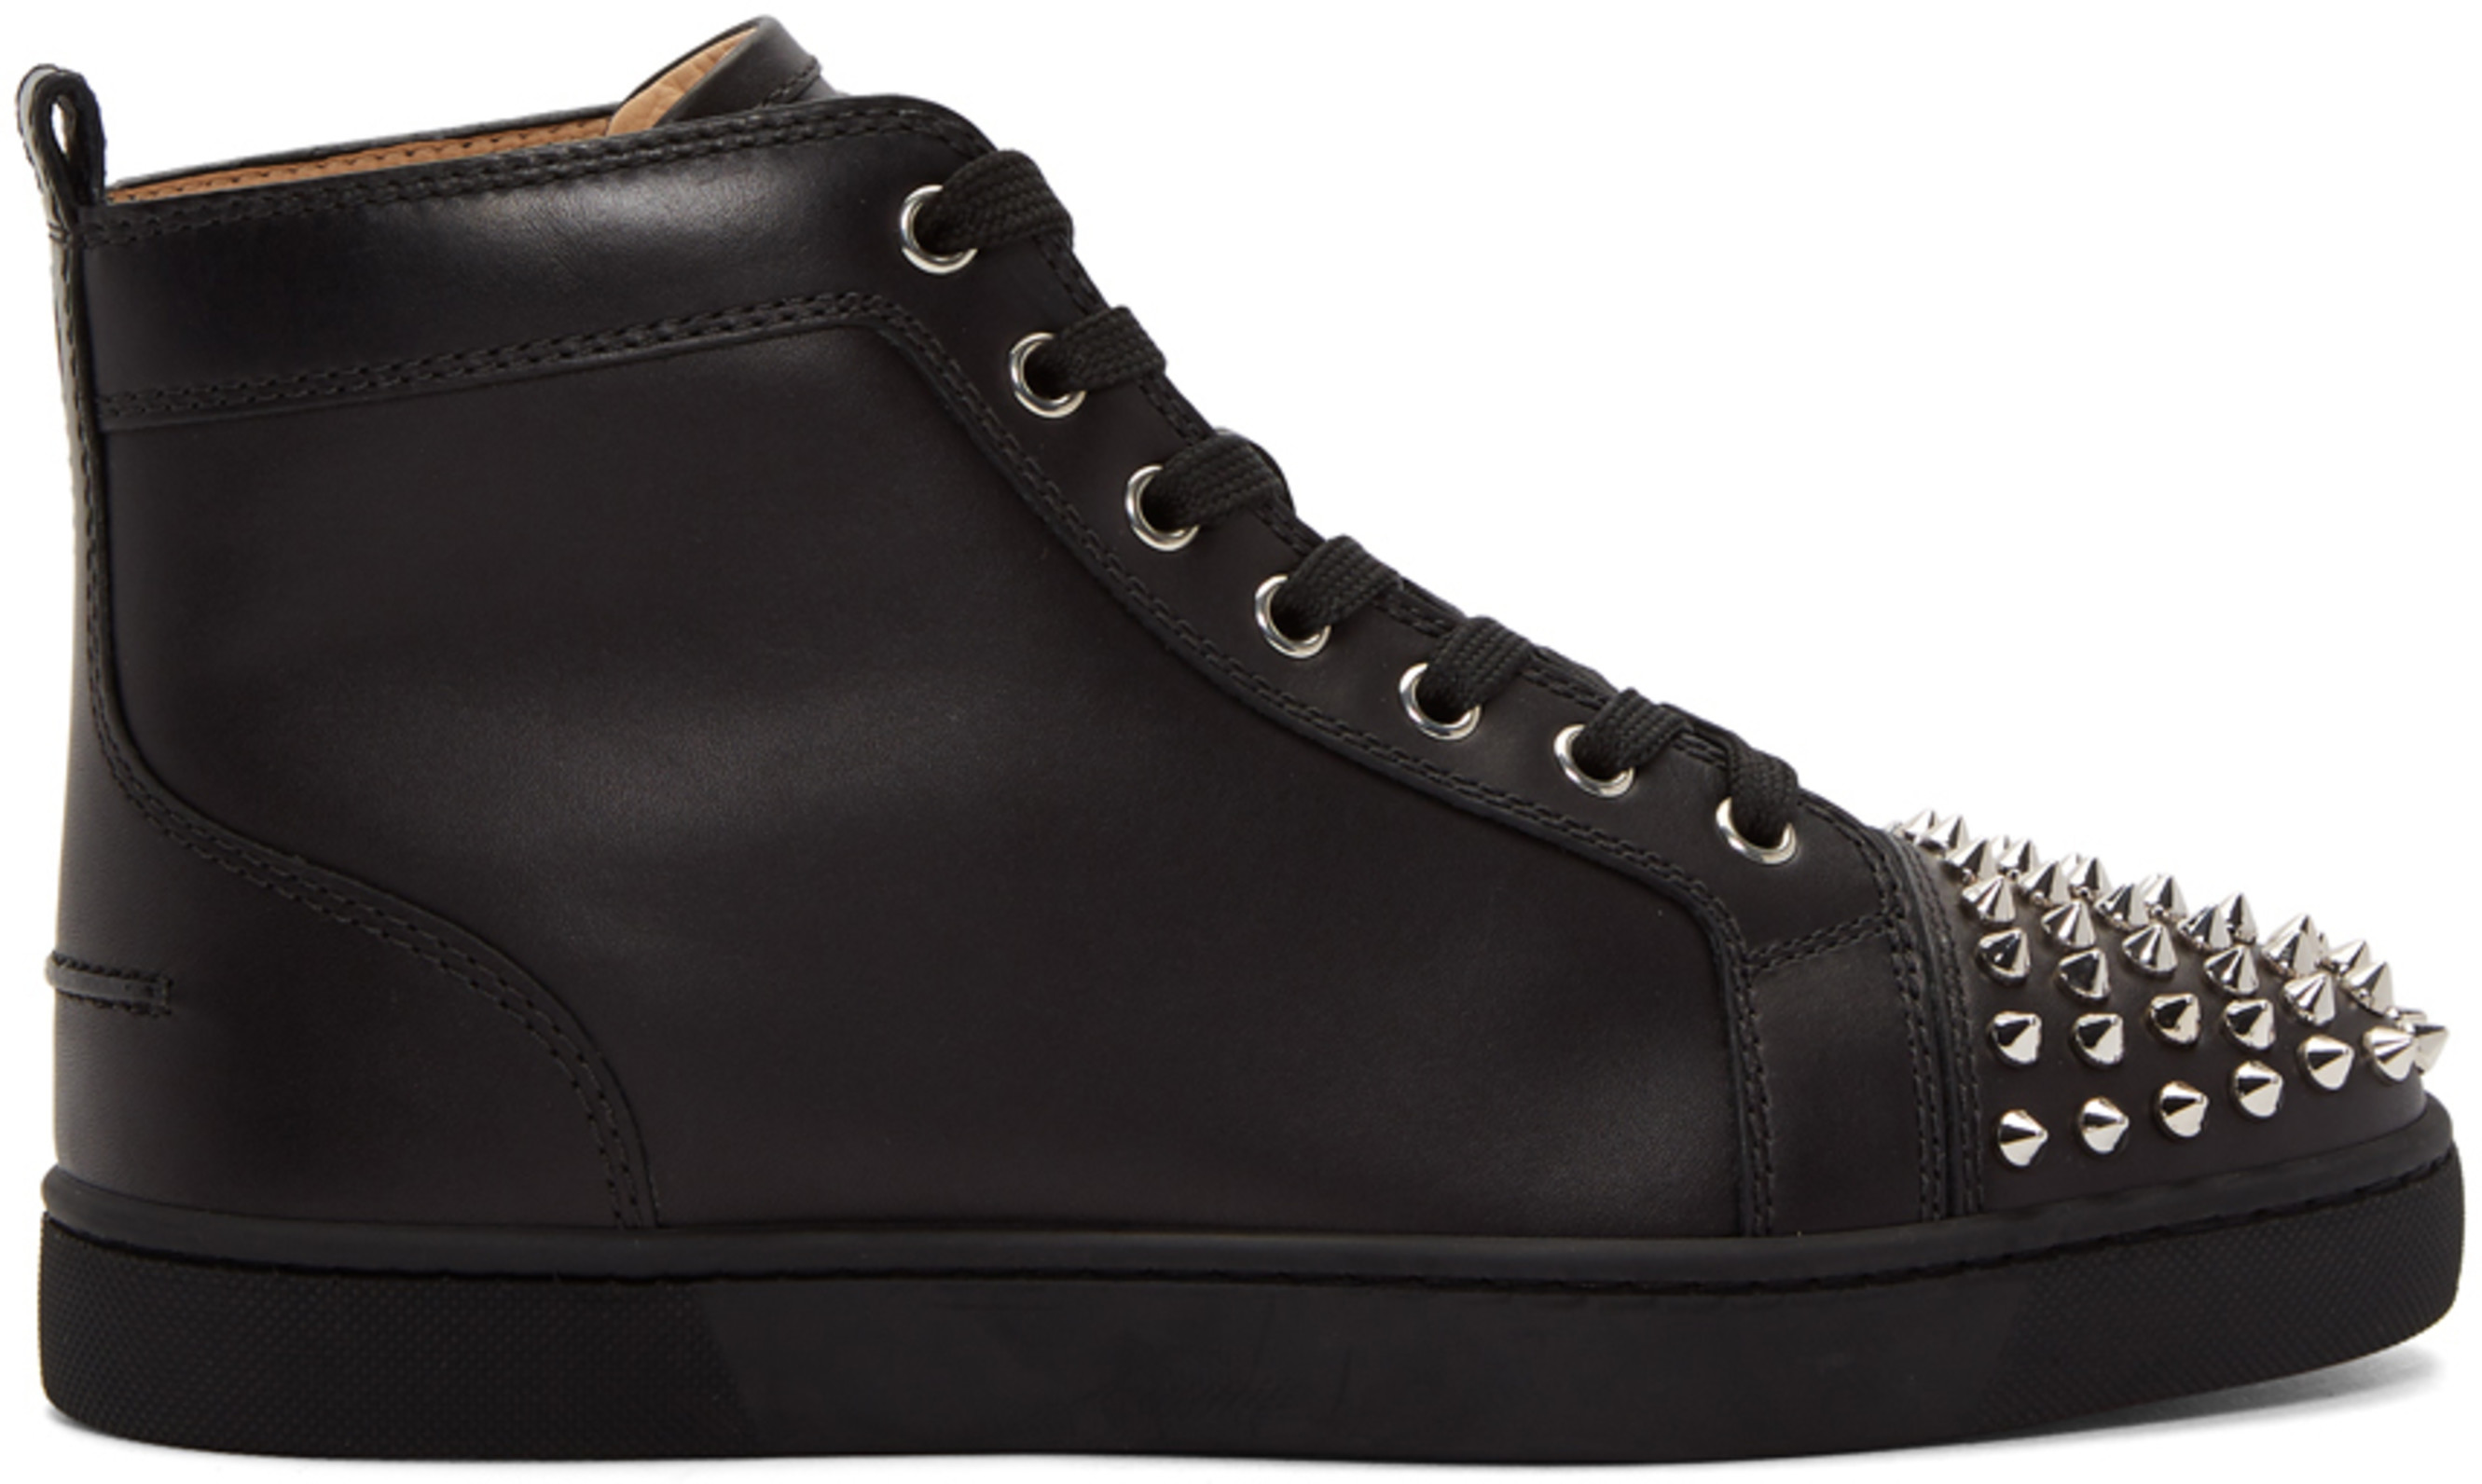 uk availability 4cd08 bc650 Black Lou Spikes High-Top Sneakers